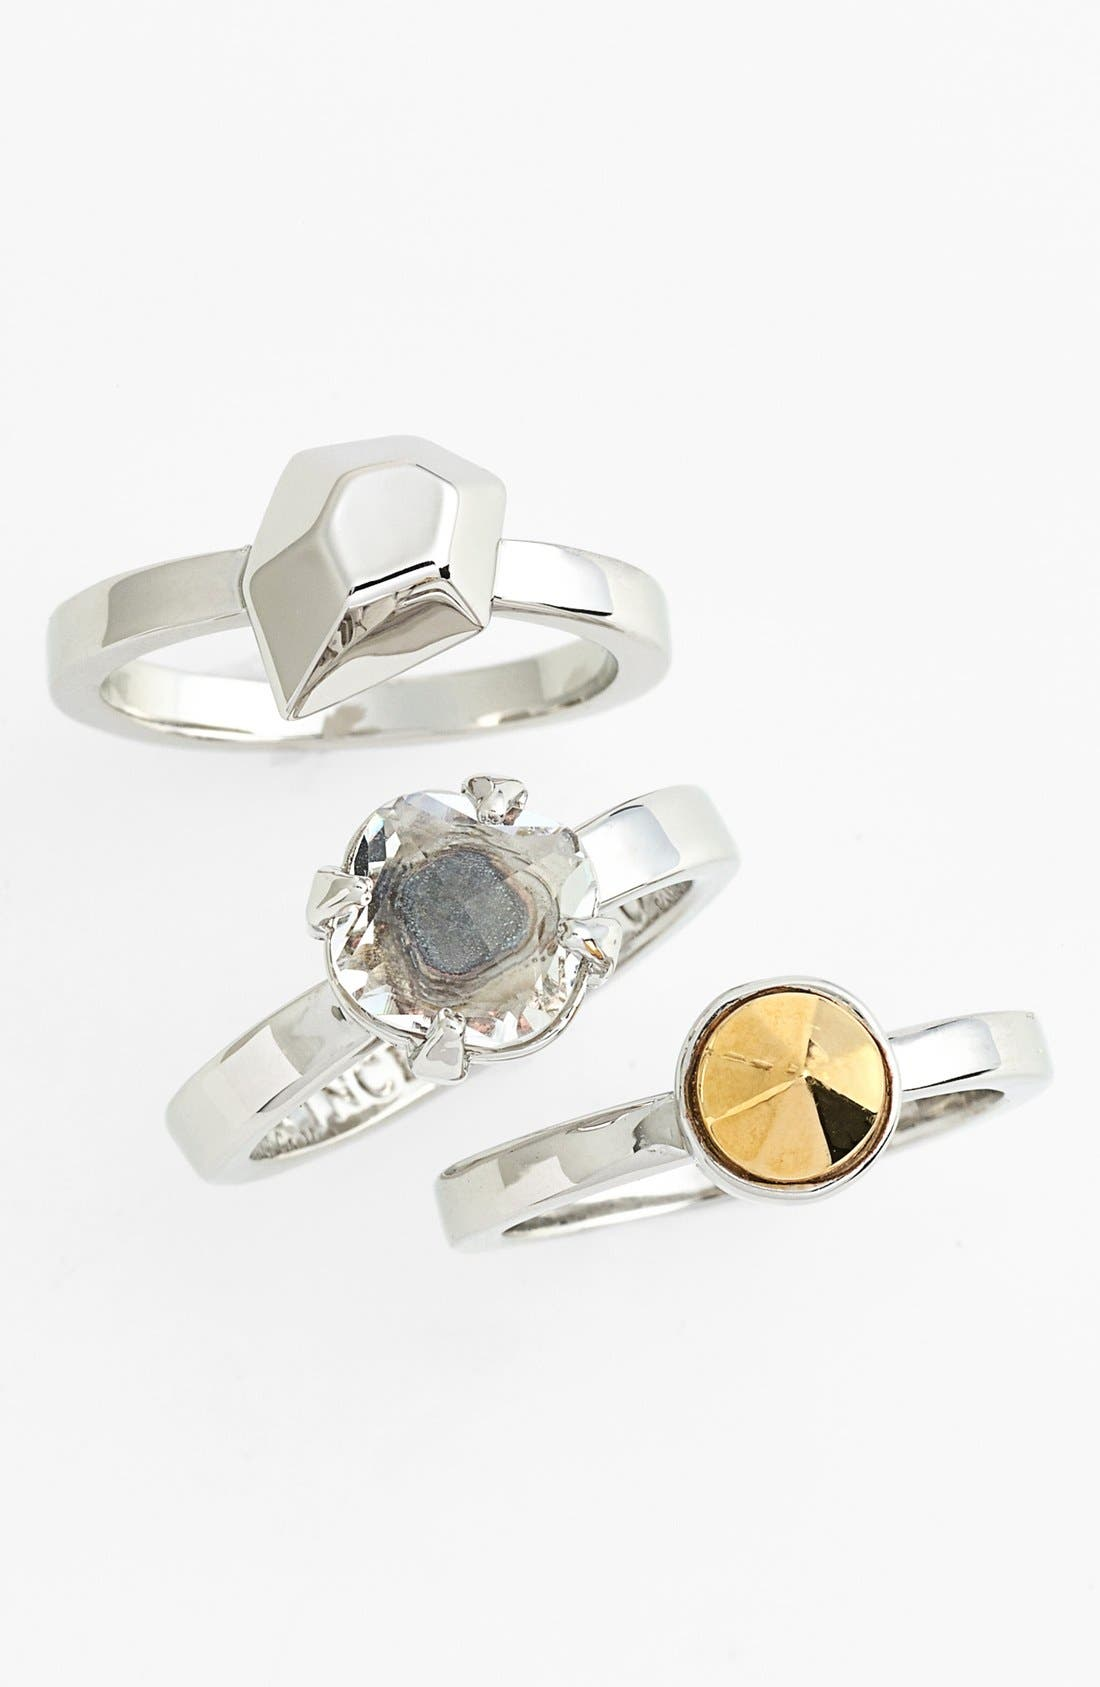 Alternate Image 1 Selected - Vince Camuto 'Caviar Dreams' Stackable Rings (Set of 3) (Nordstrom Exclusive)